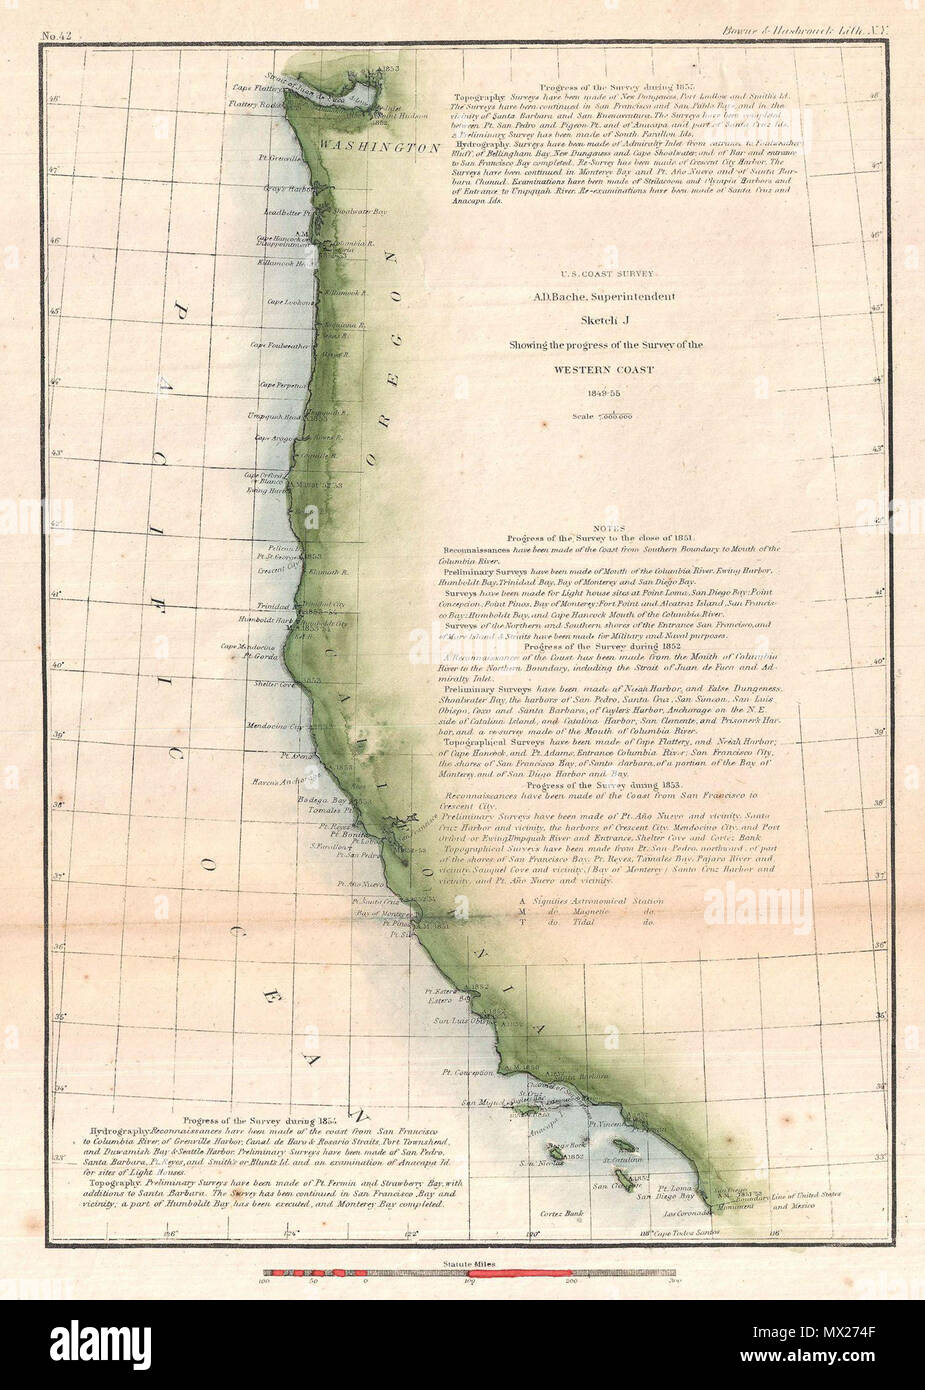 Sketch J Showing the progress of the Survey of the Western ... on u.s. railroad map 1849, california map 1849, mexico map 1849, wisconsin map 1849, arizona map 1849, boston map 1849, texas map 1849, world map 1849, greece map 1849, nevada map 1849, europe map 1849,